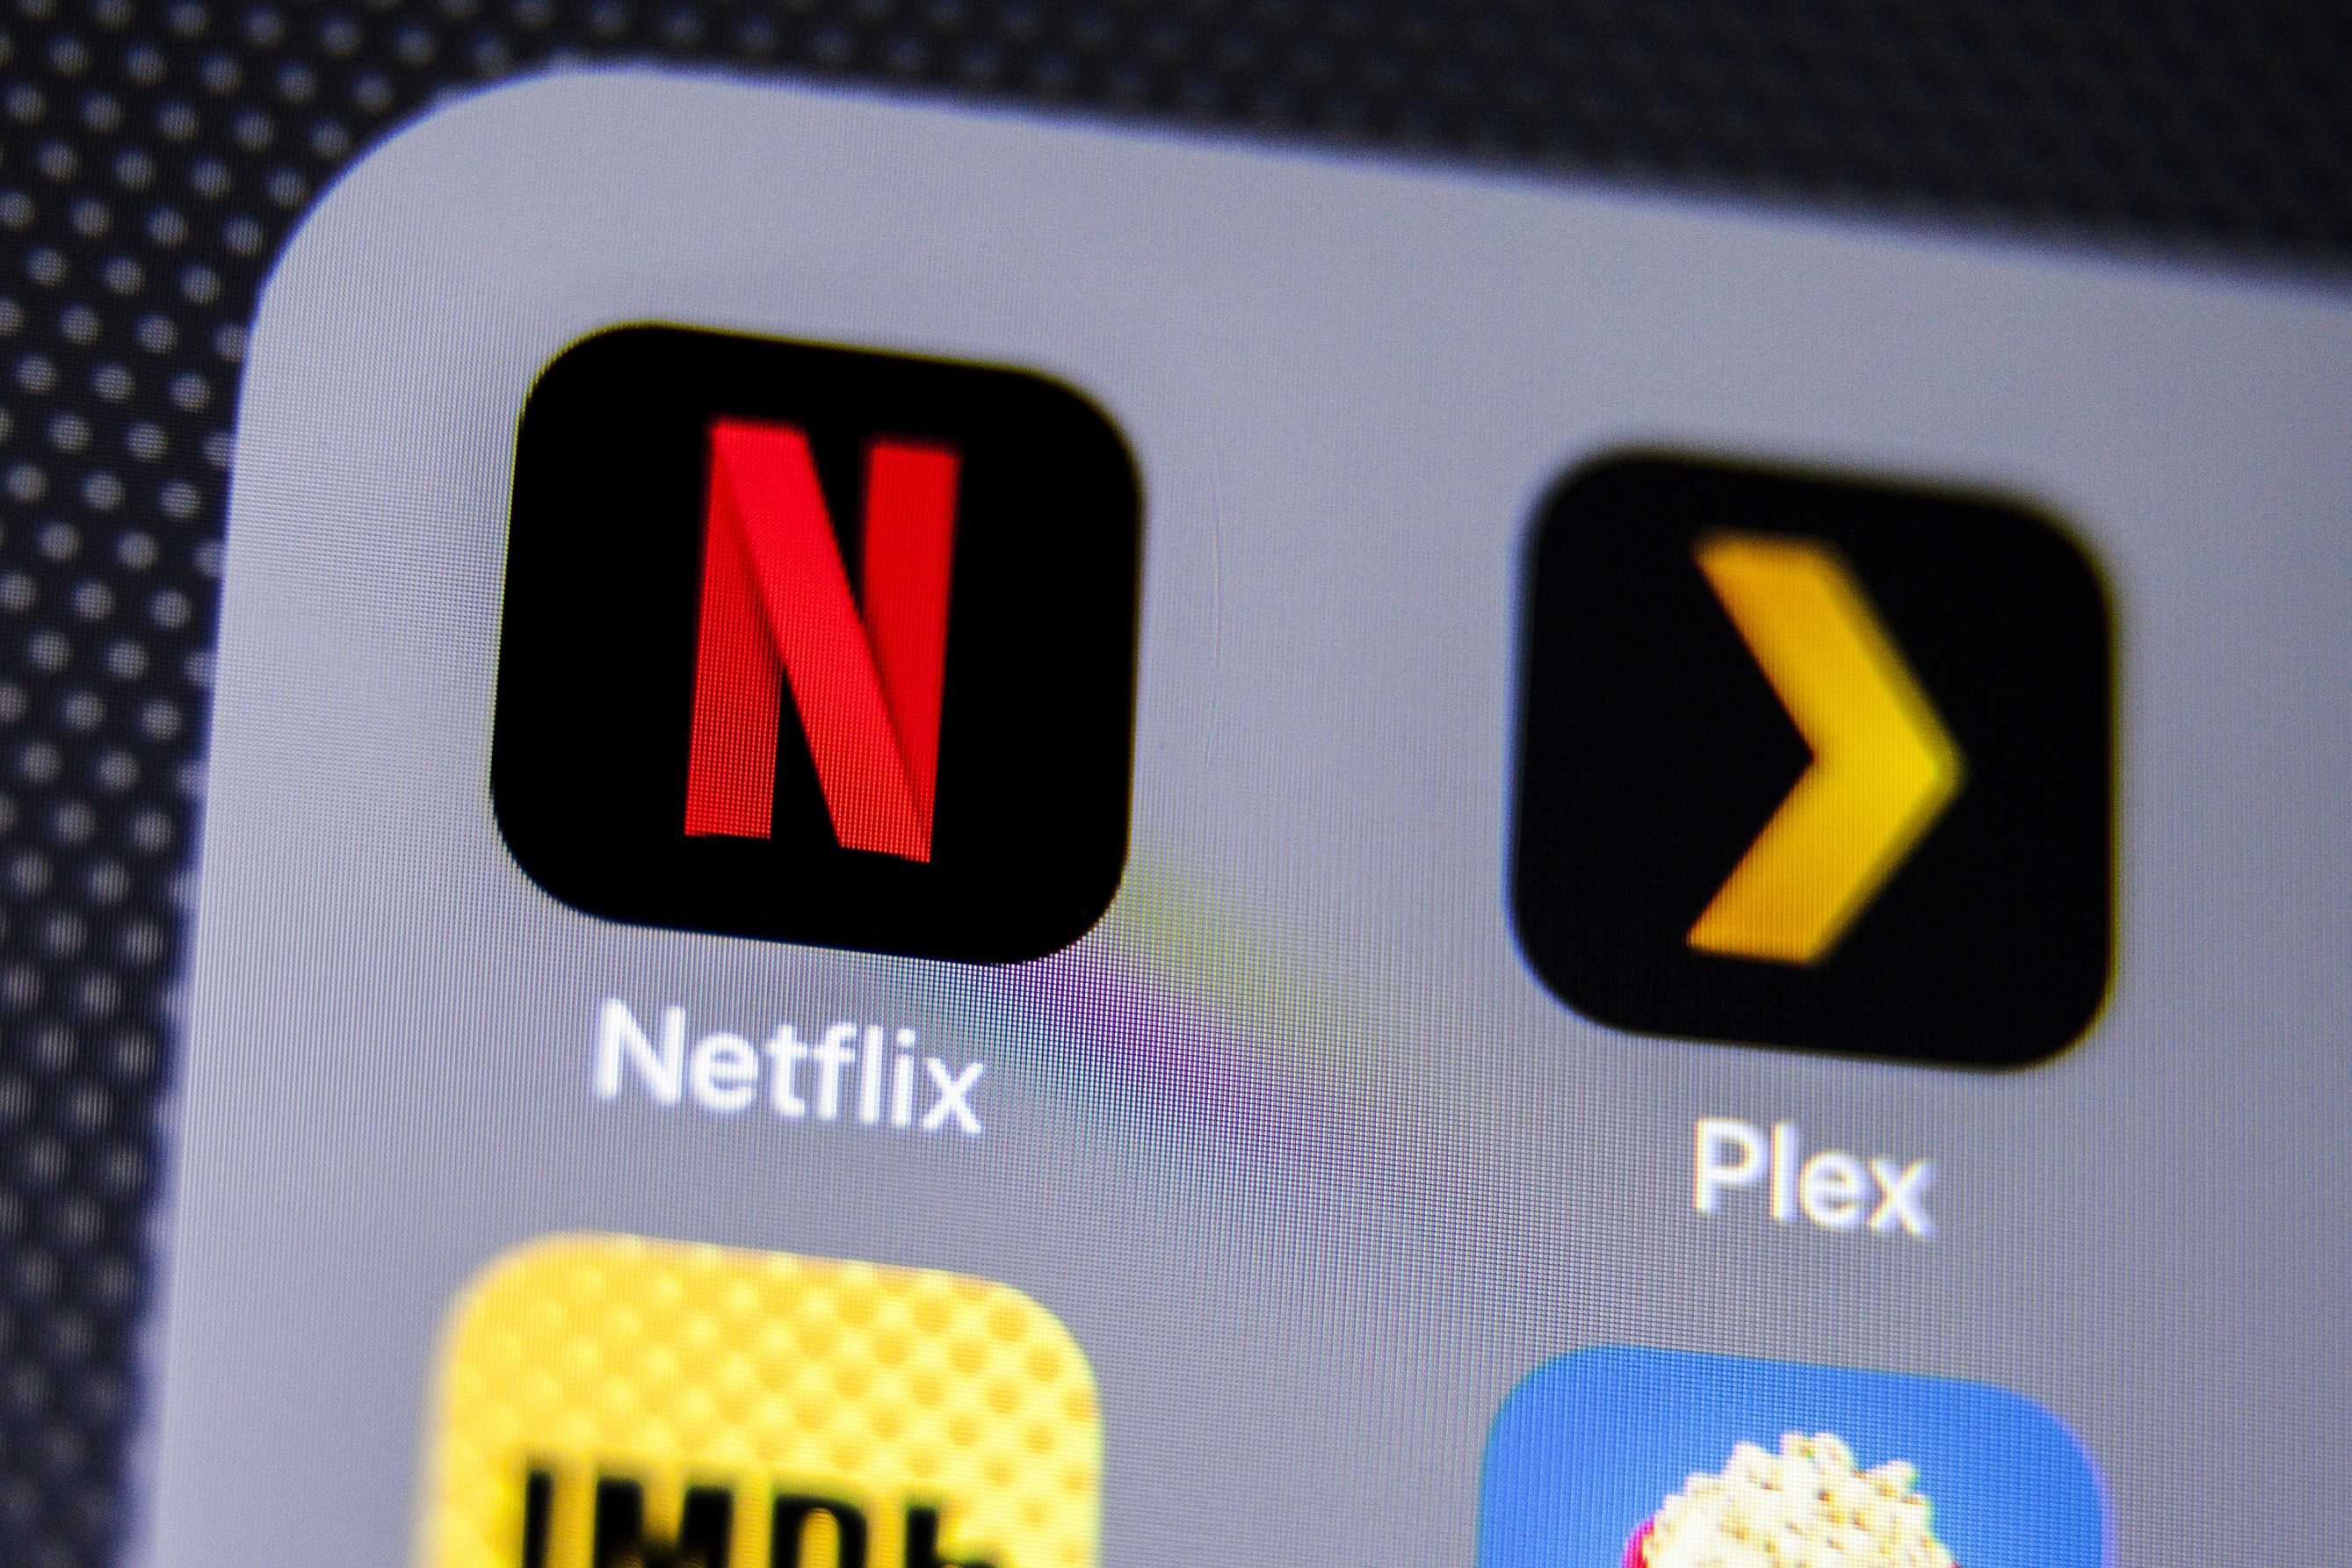 Don't be a sucker and fall for this Netflix scam